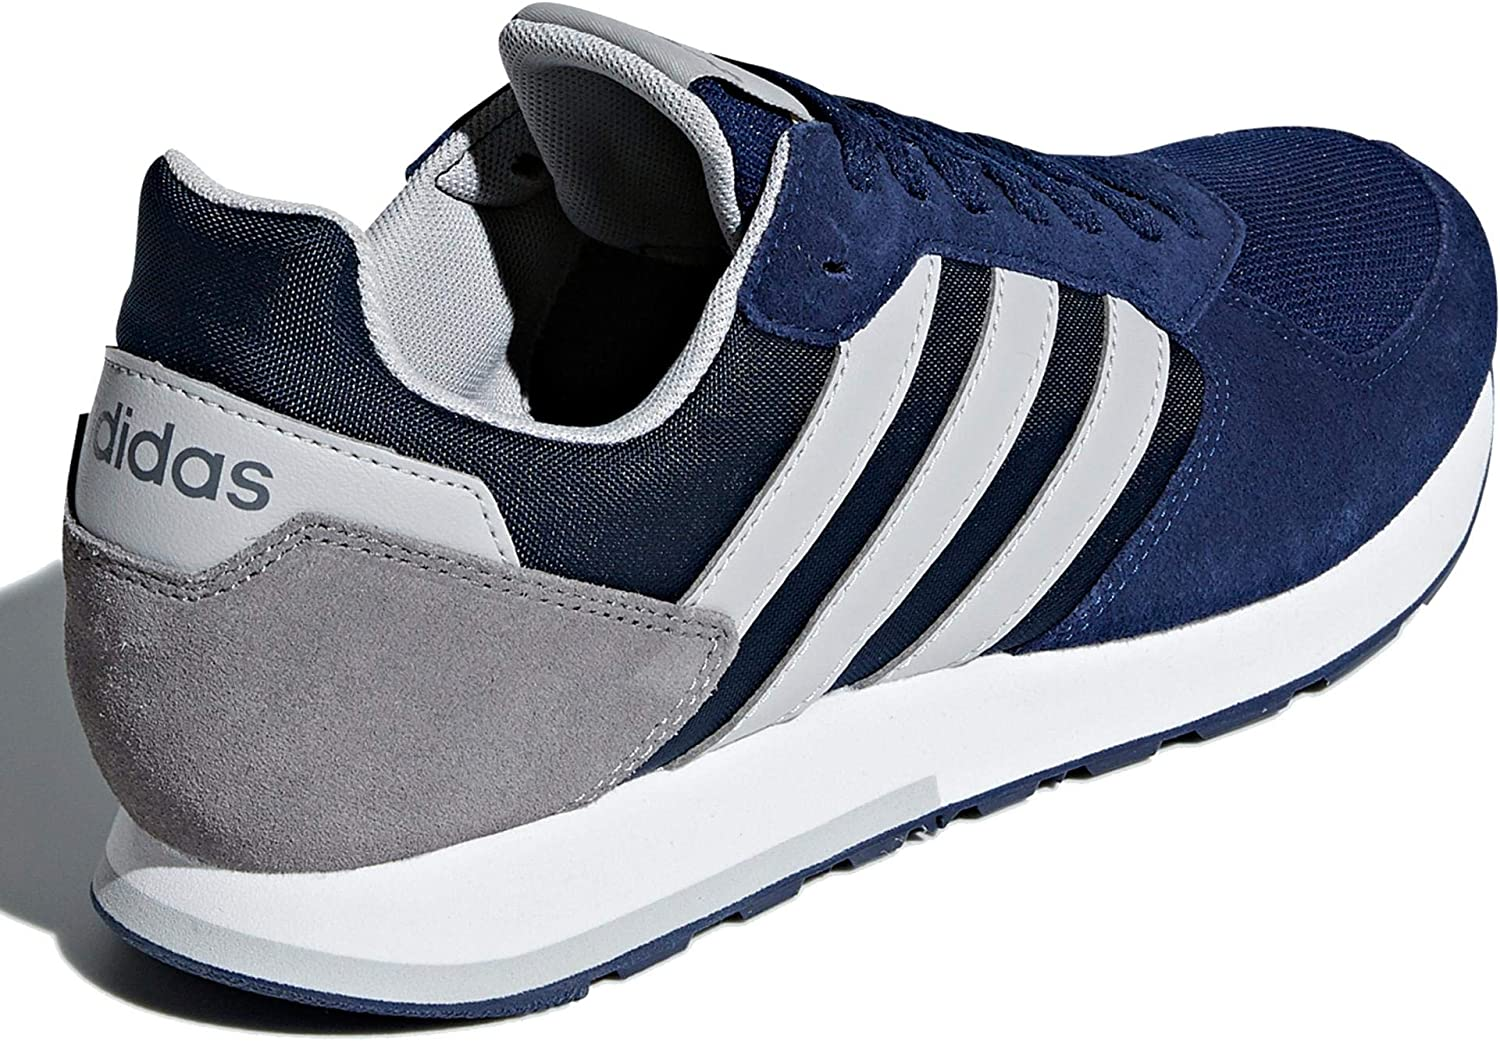 adidas athletics 24/7 tr m zapatillas de gimnasia unisex adulto